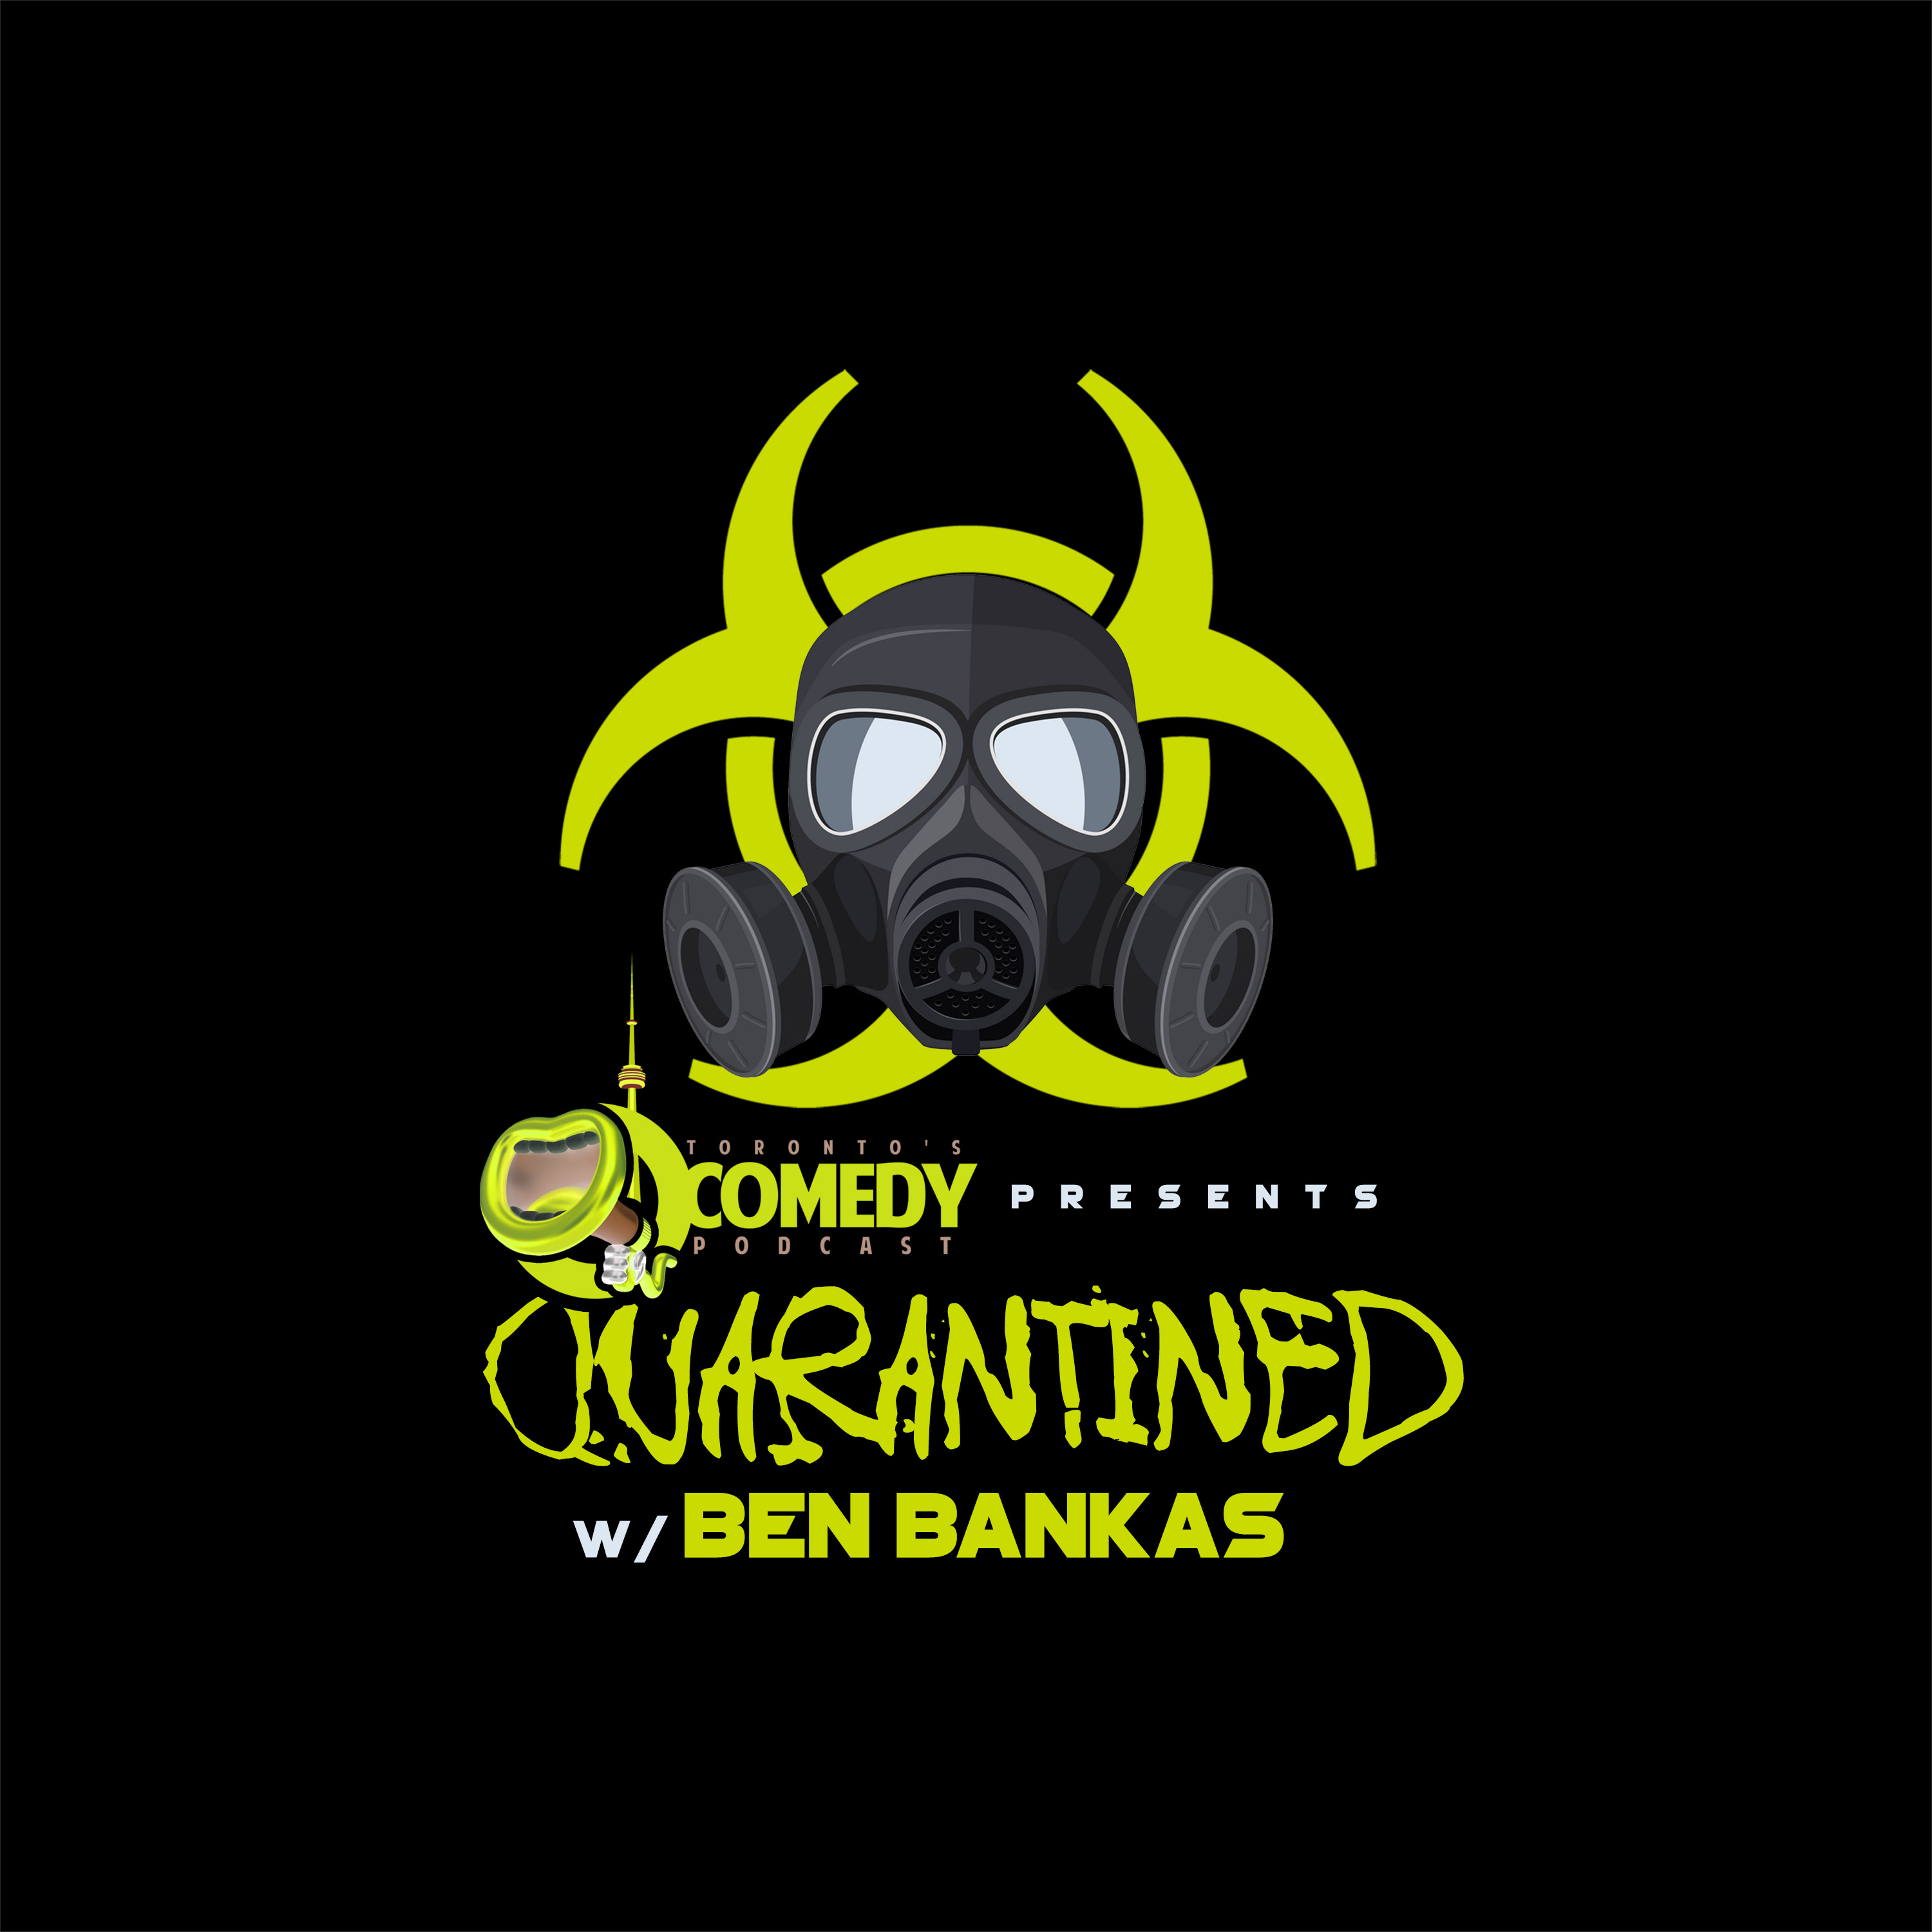 #40 Toronto Comedy Podcast Network Presents: Quarantined with Ben Bankas #19